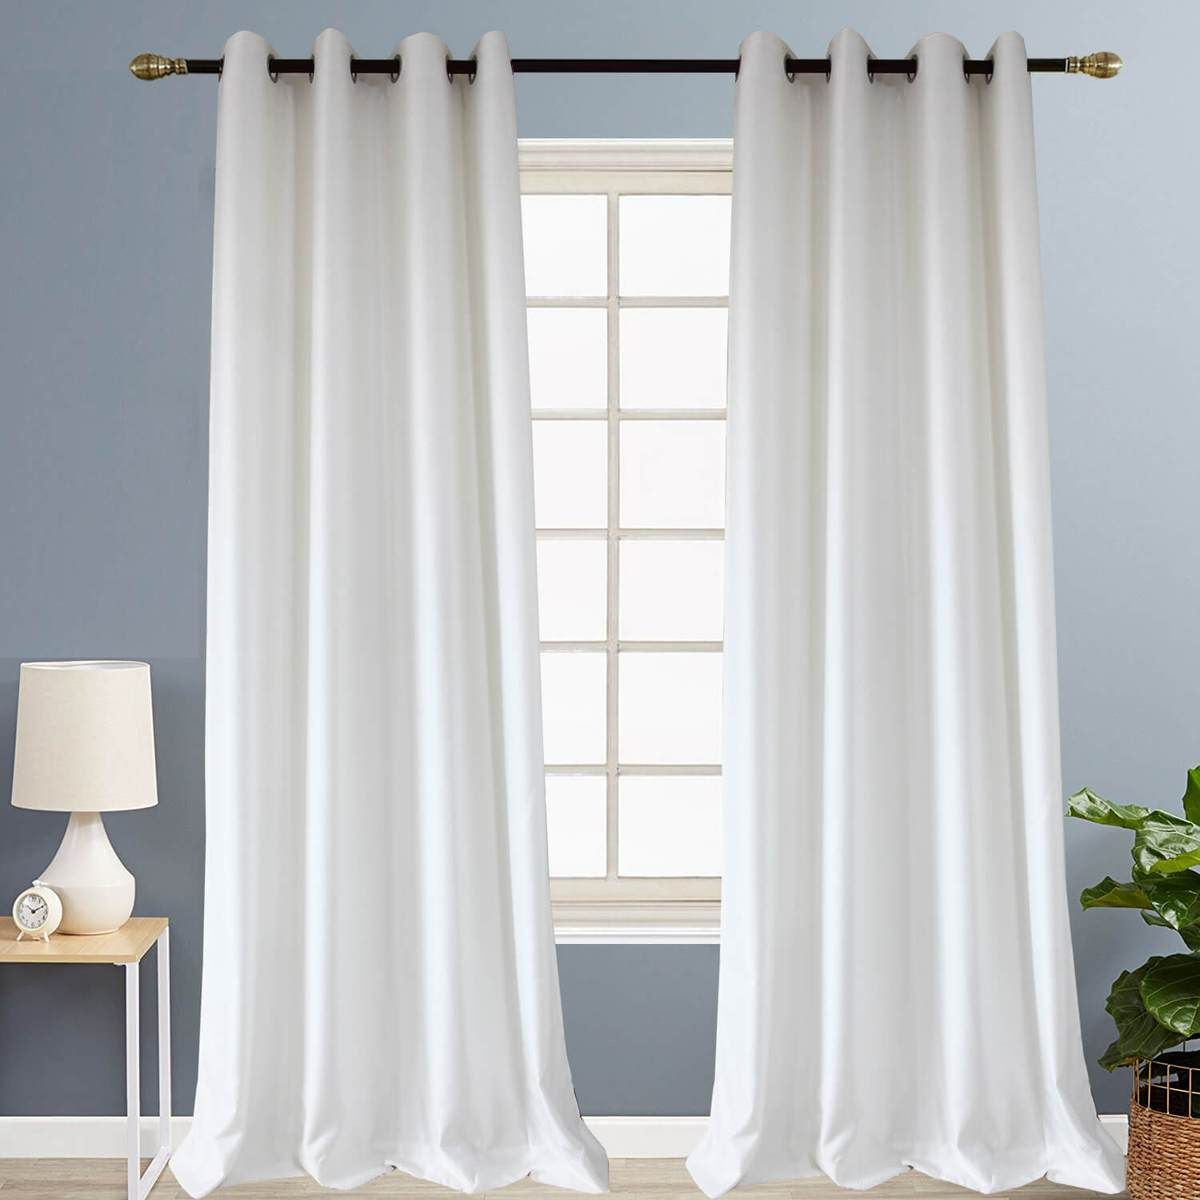 White Curtains Soft Small Texture Block Drapes For Bedroom Living